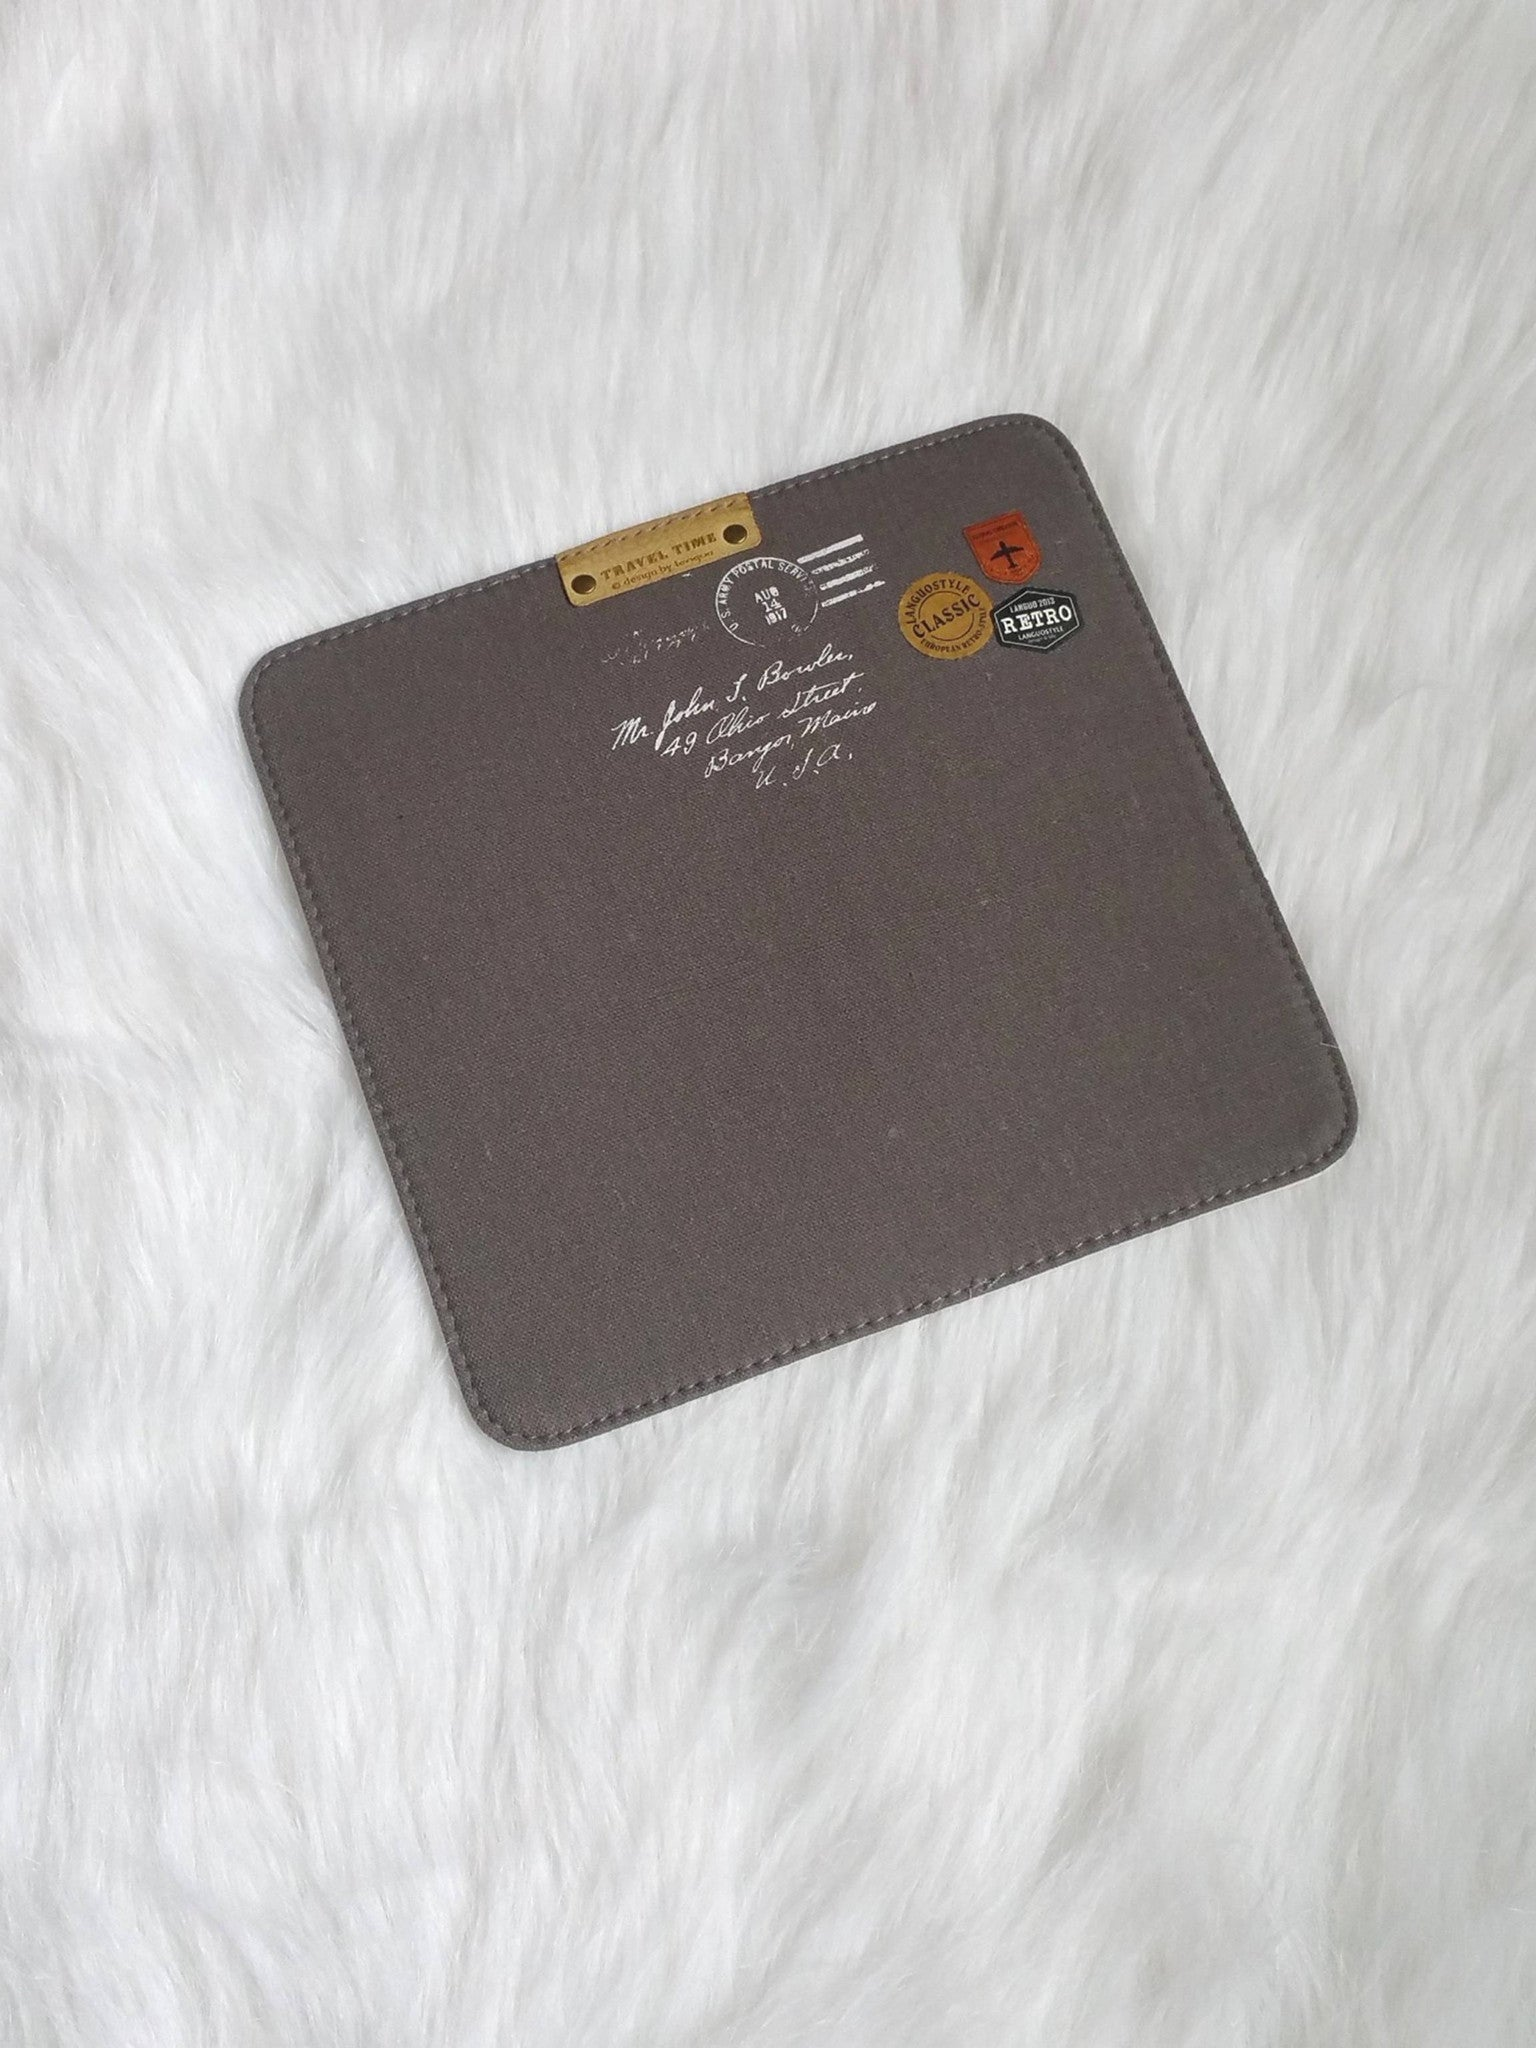 Gray Mouse Pads, Office Mouse Pads, Office Gifts, Co-worker Gifts